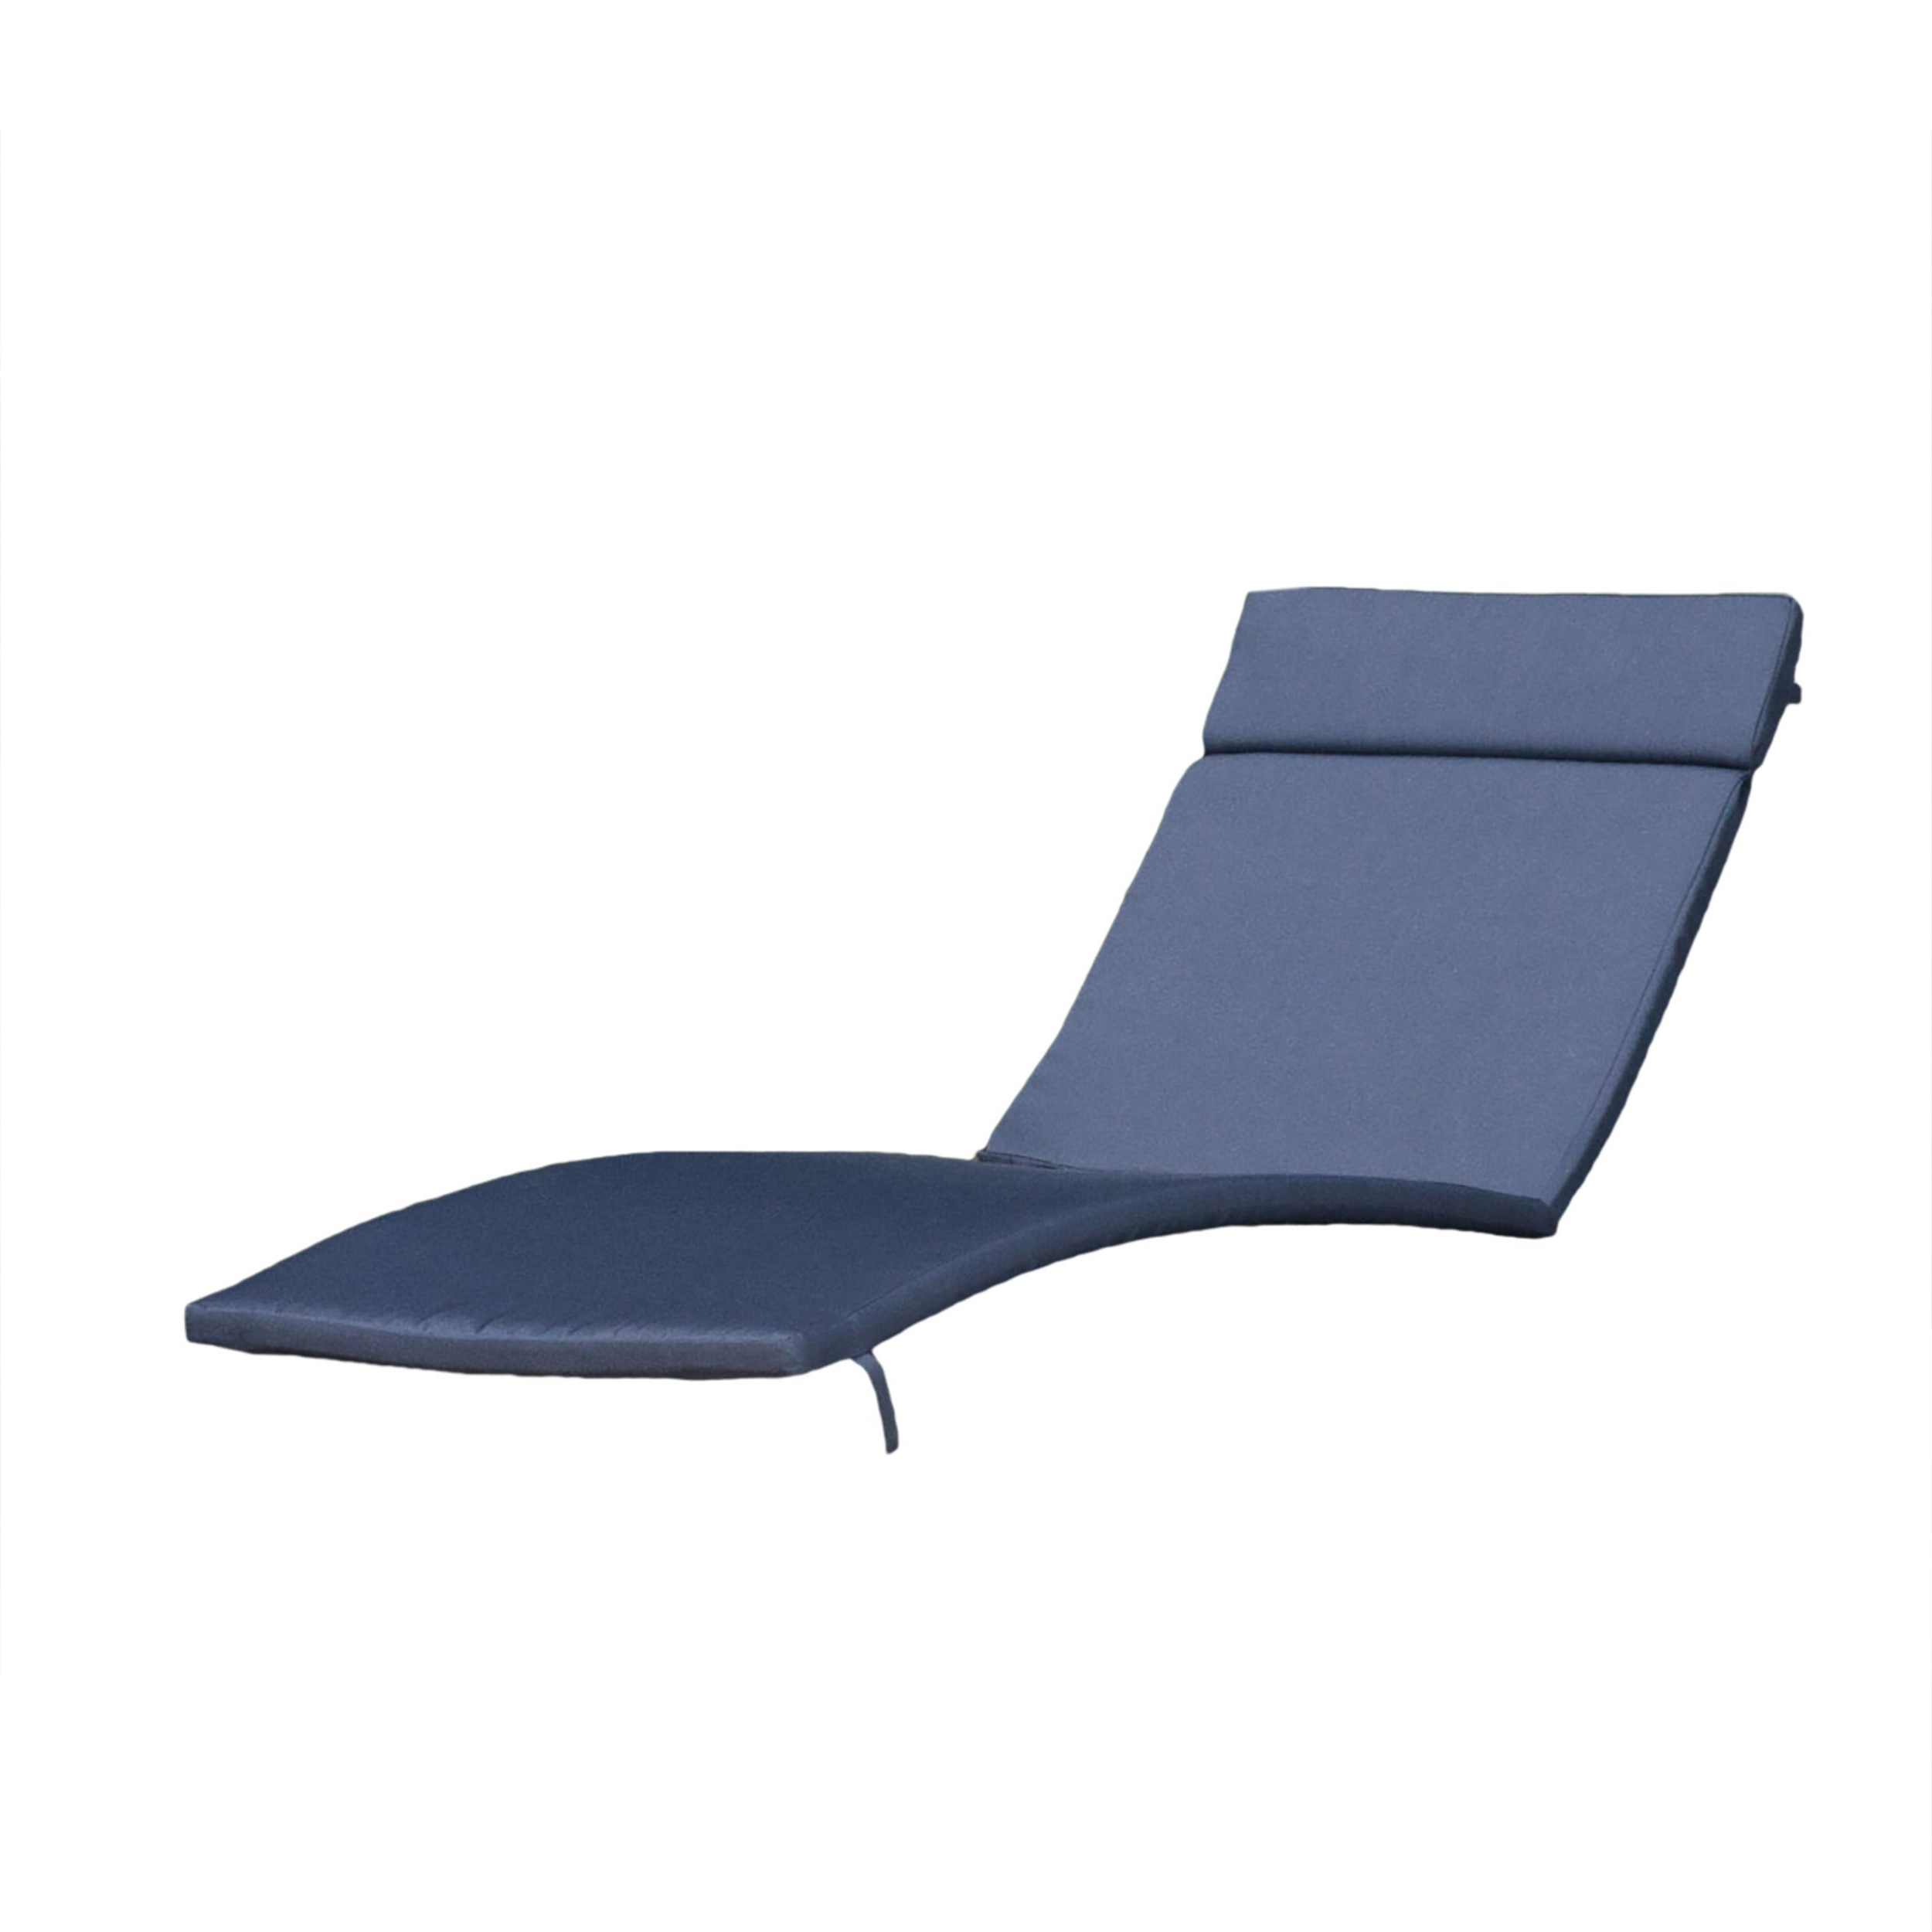 Details About Salem Outdoor Chaise Lounge Cushion (Set Of 2) By With Regard To Recent Jamaica Outdoor Chaise Lounges (View 5 of 25)